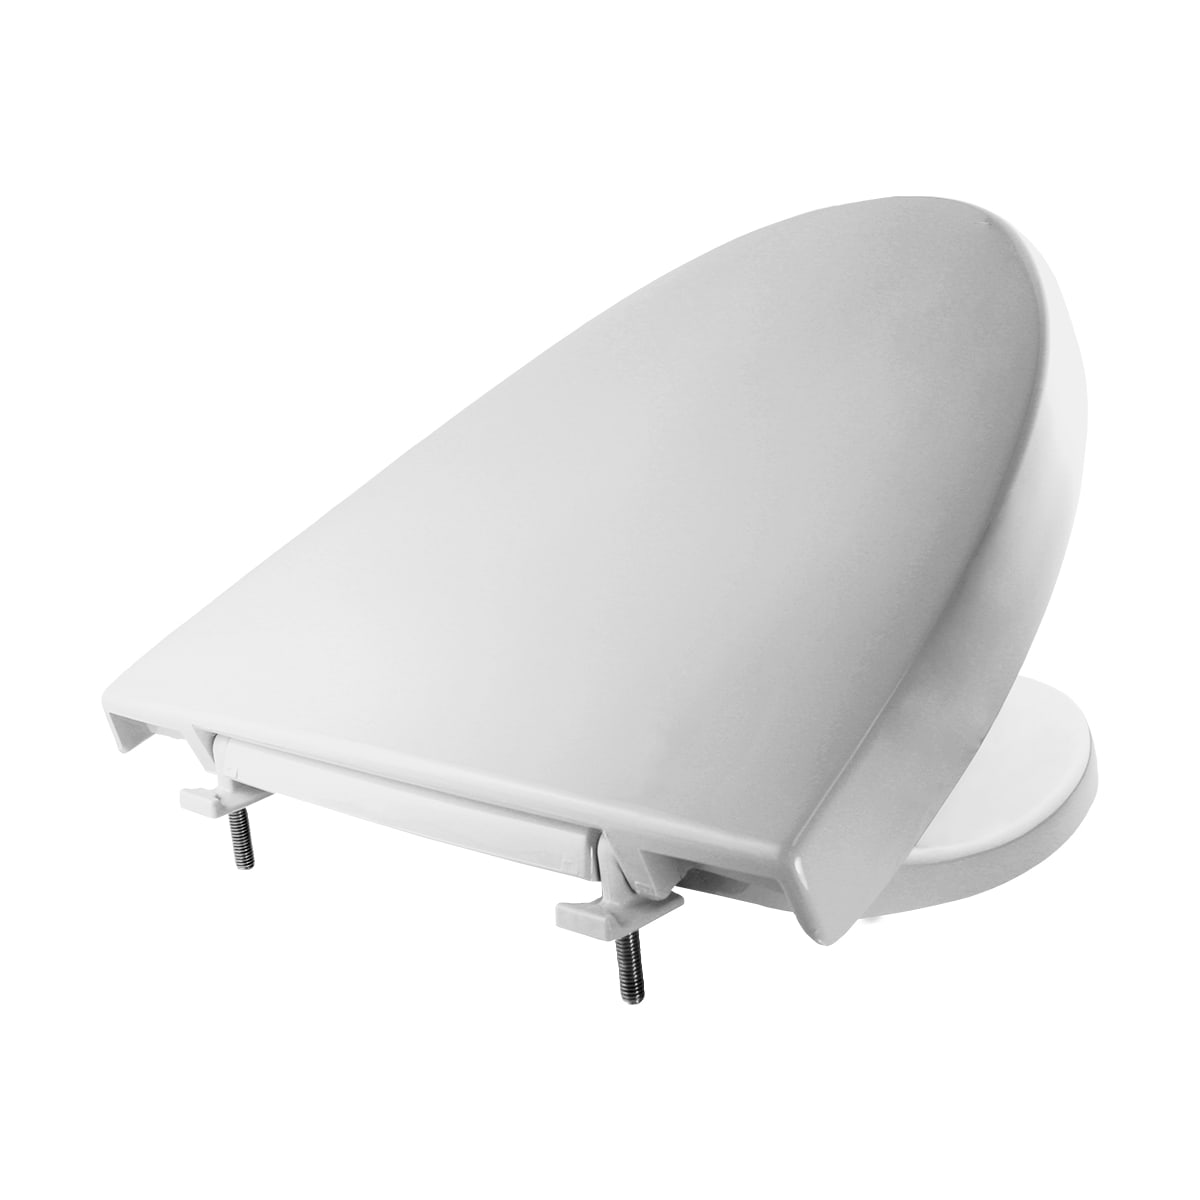 Sensational Bone Elongated Bemis El270006 El270 006 Toilet Seat Arcdema Com Pabps2019 Chair Design Images Pabps2019Com